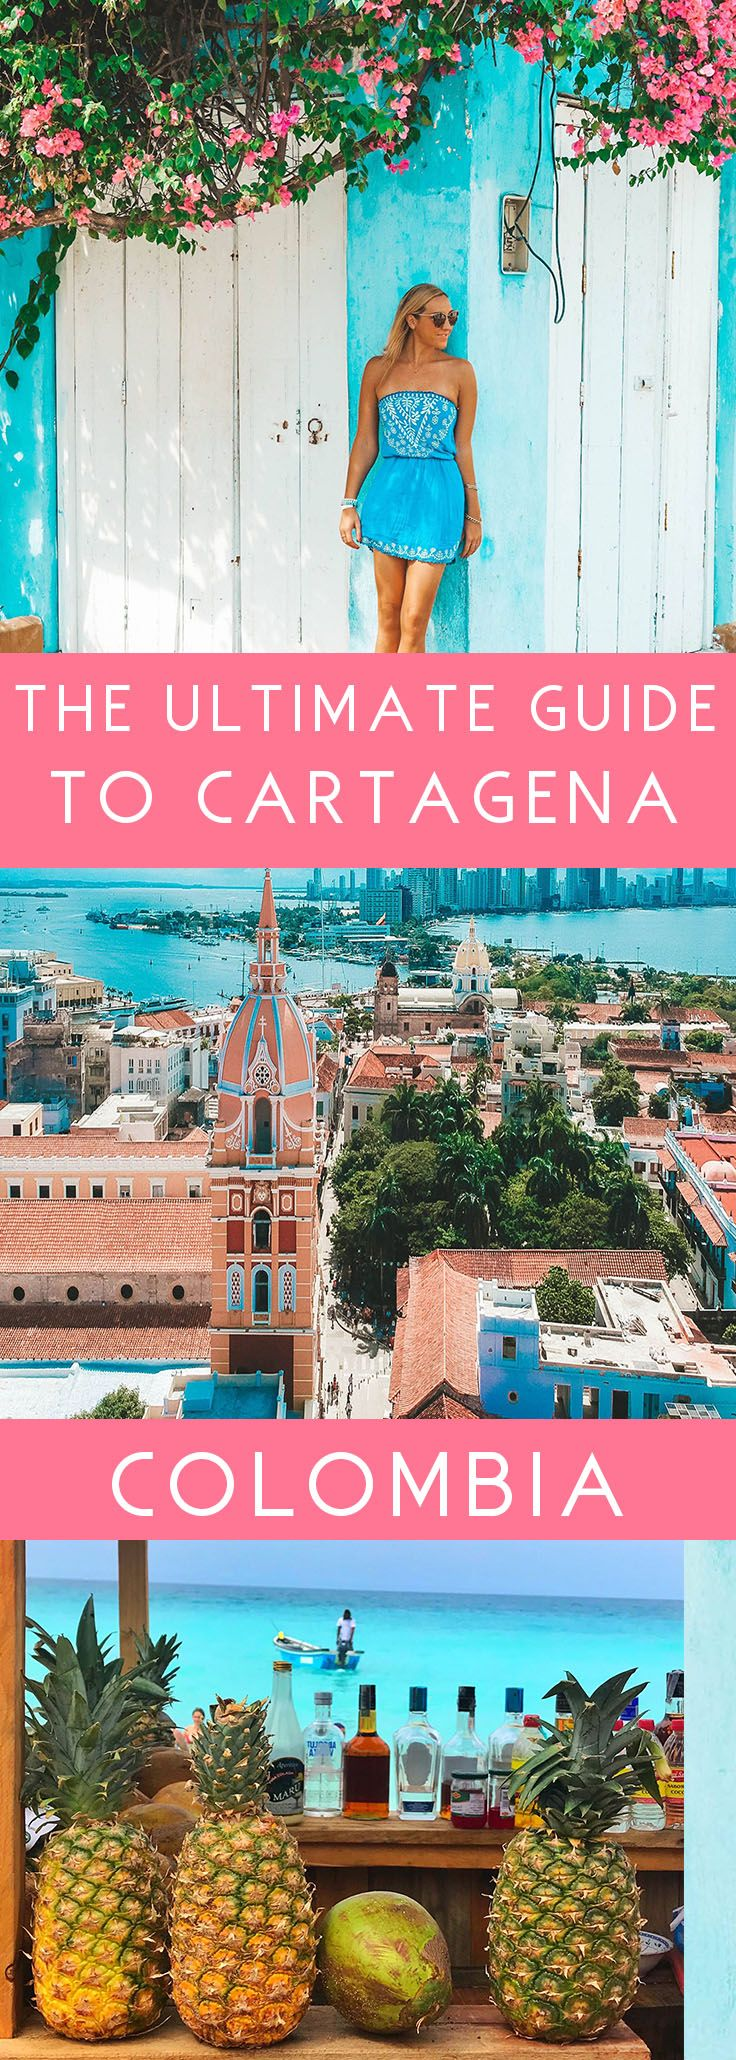 The Ultimate Travel Guide To Cartagena, Colombia